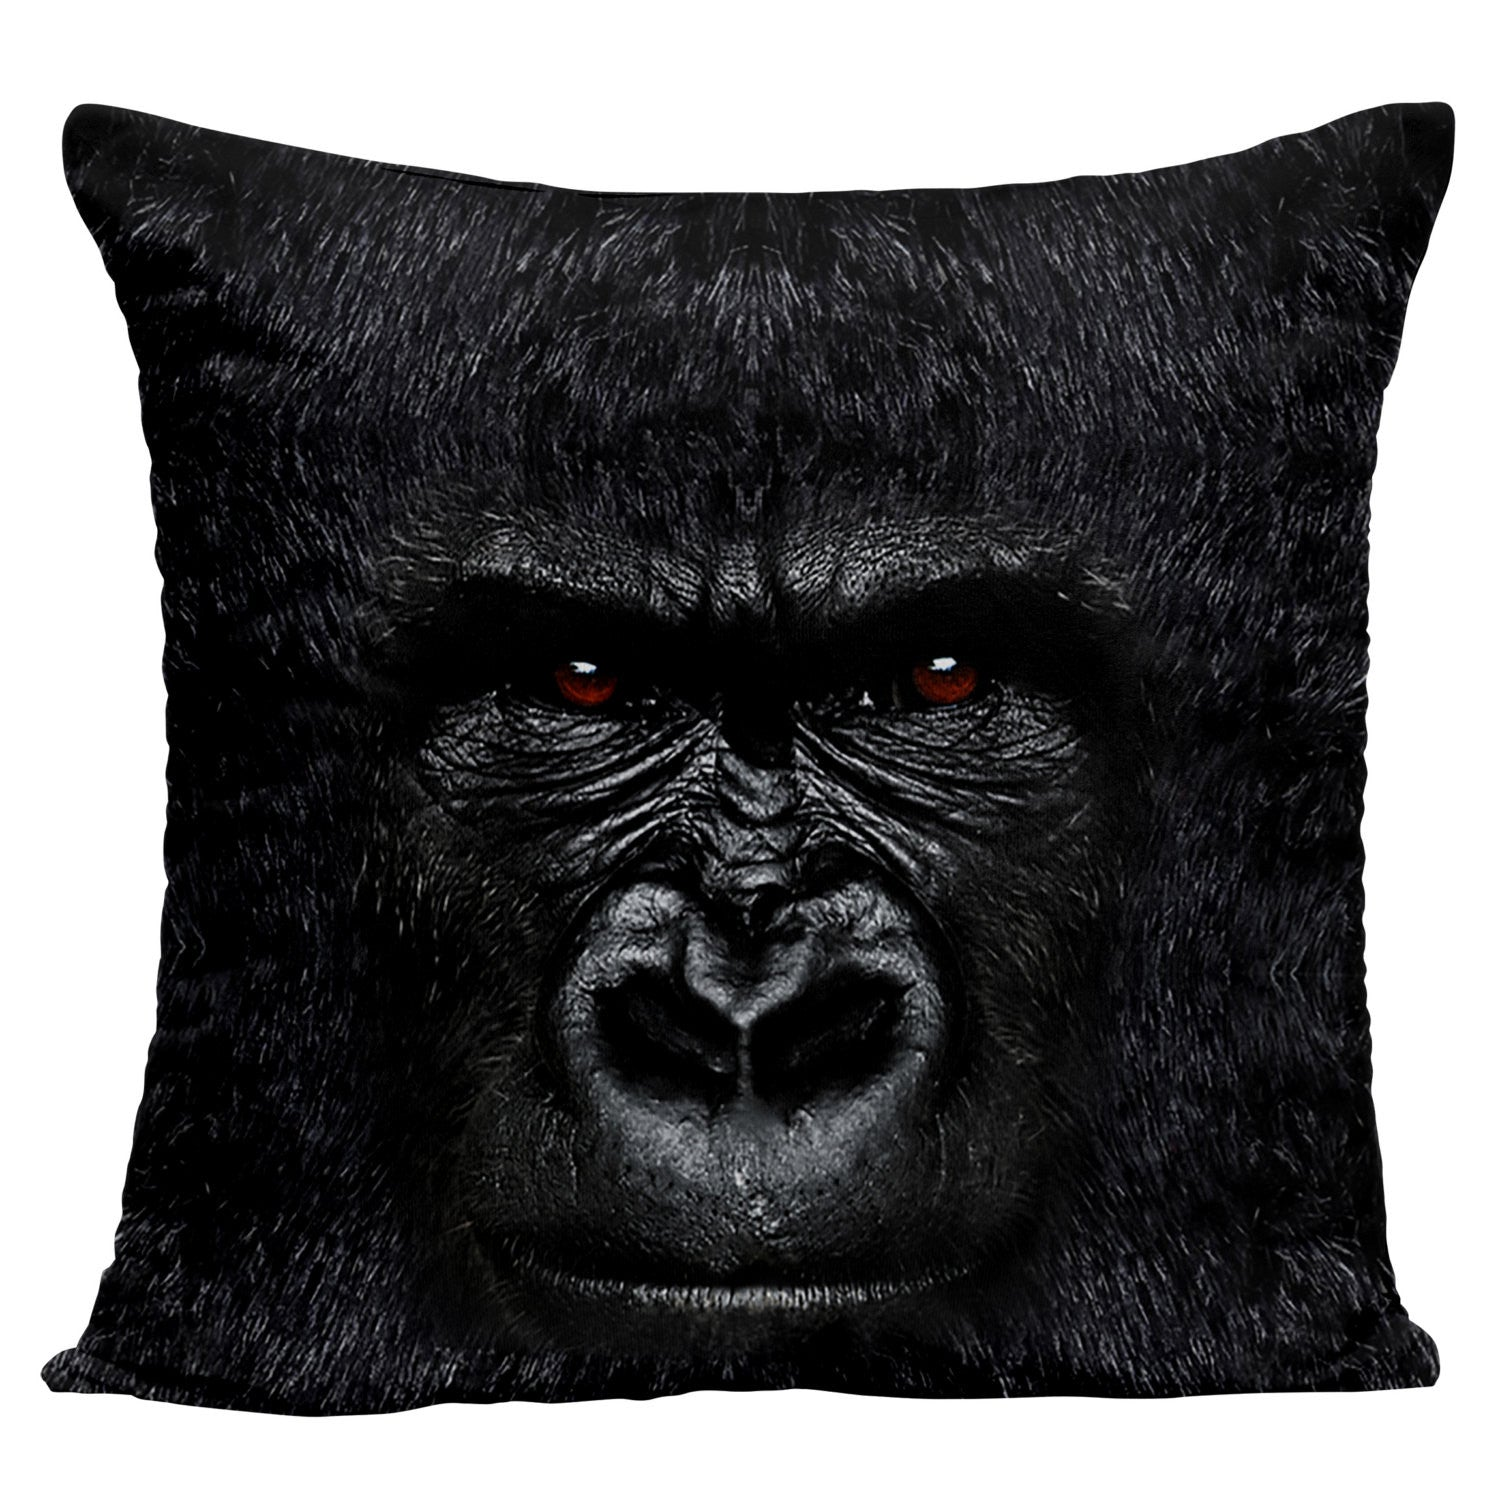 Gorilla Pillow - Shweeet